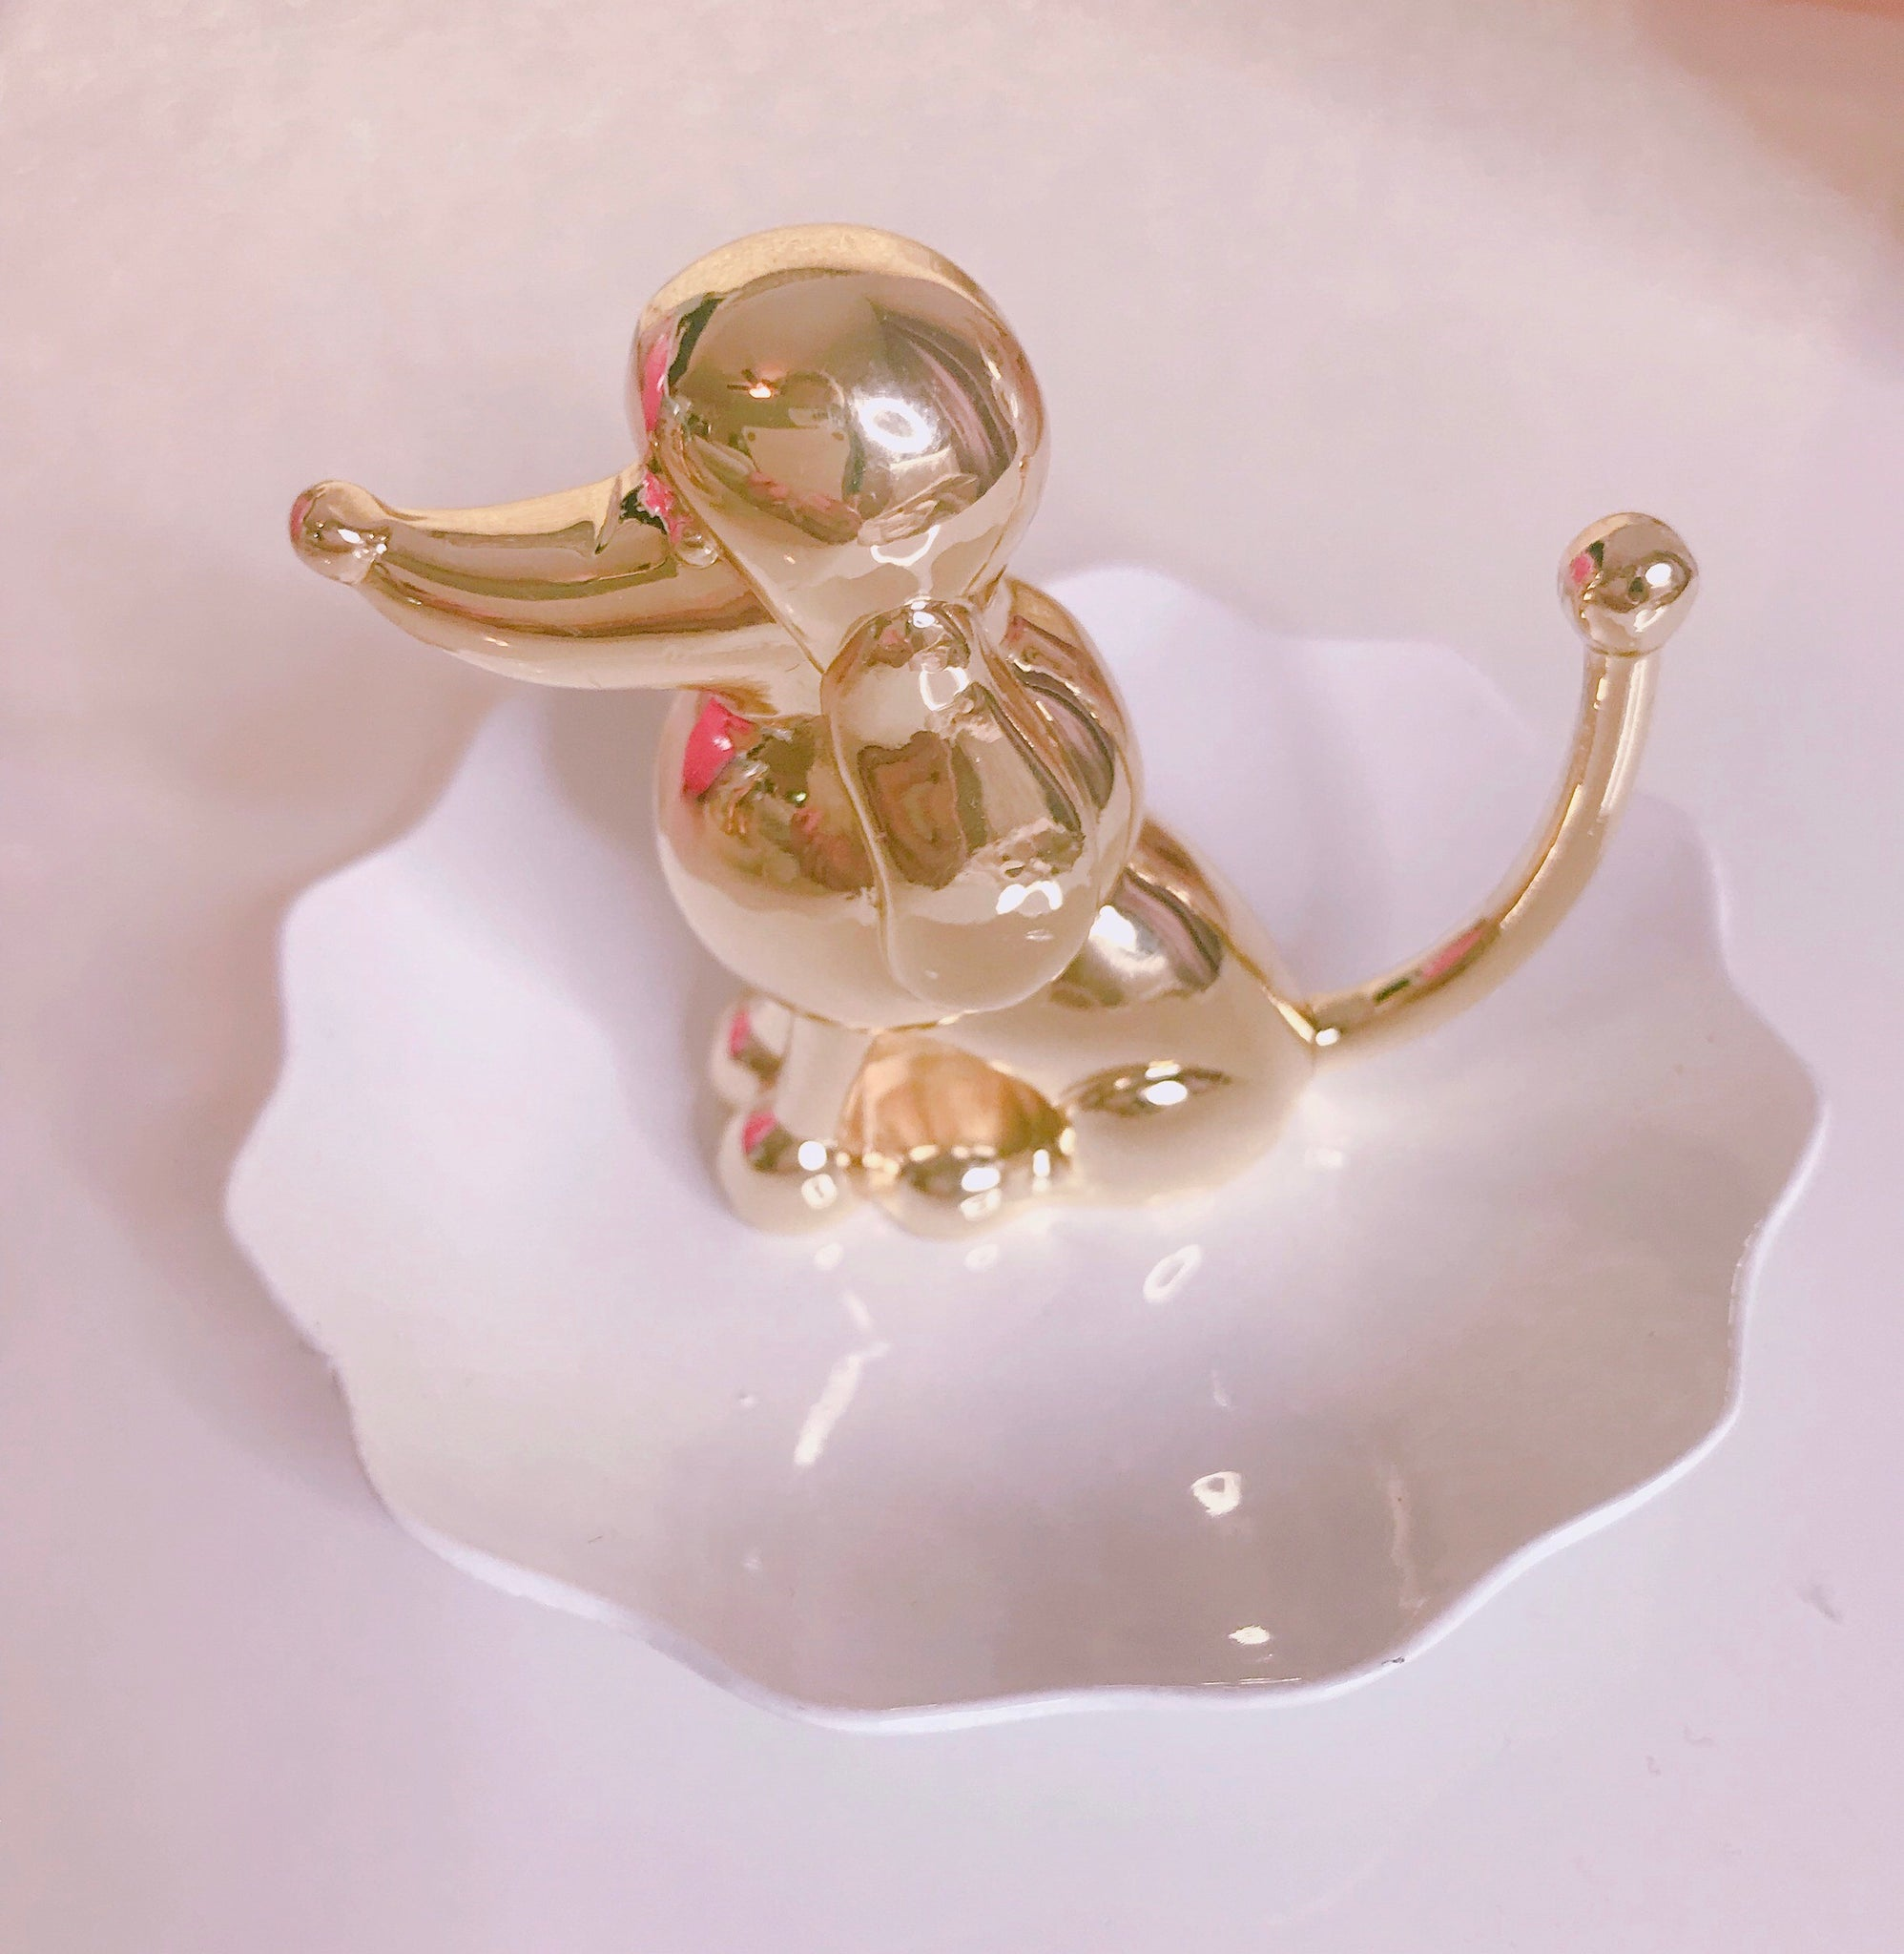 Poodle jewelry dish